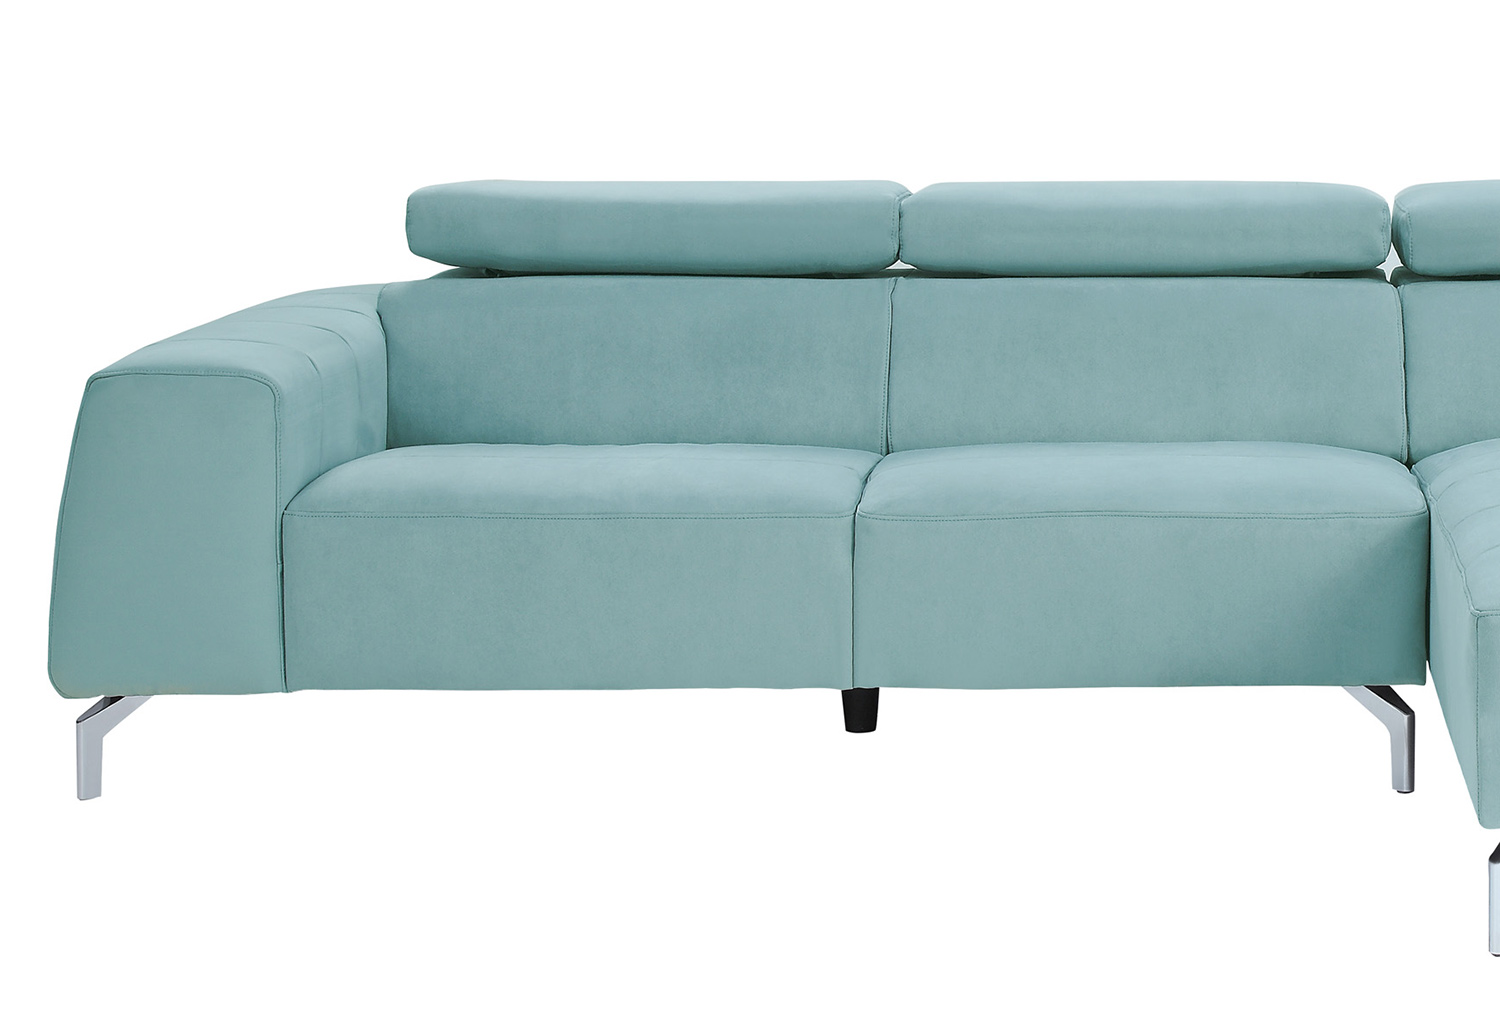 Homelegance Prose Left side 2-Seater - Teal